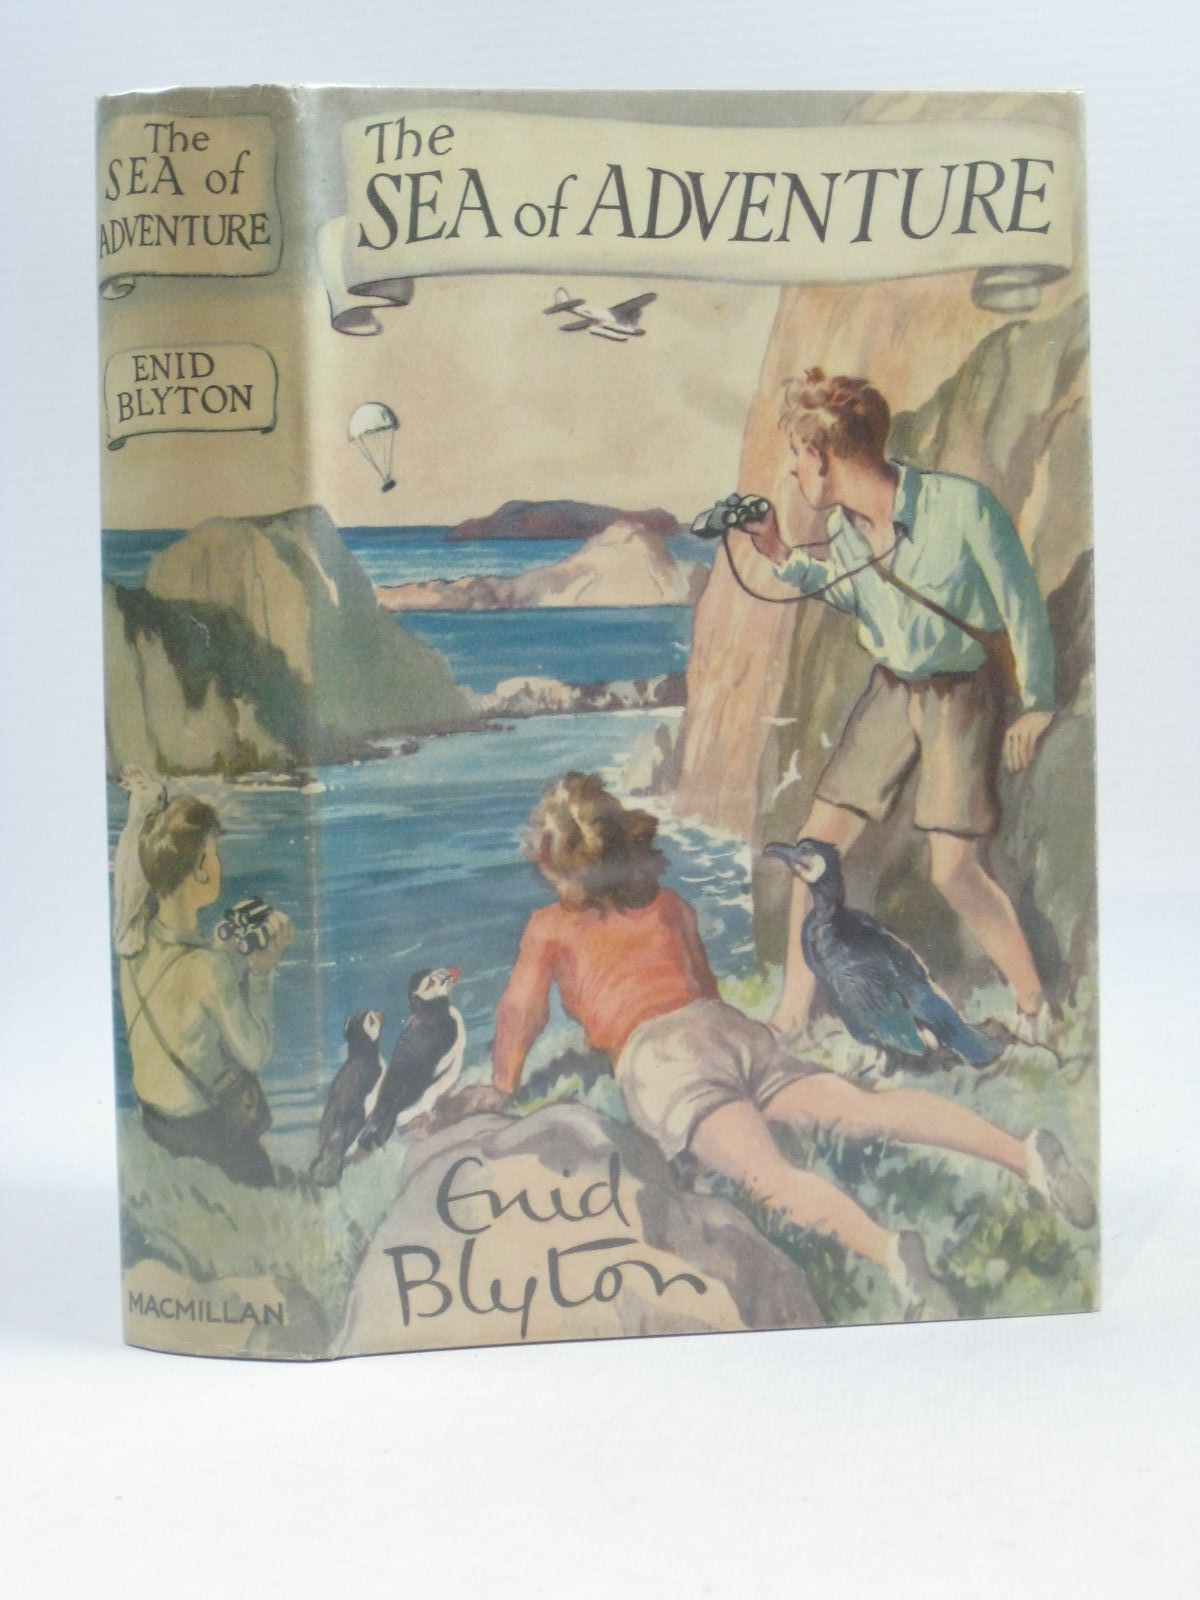 Cover of THE SEA OF ADVENTURE by Enid Blyton